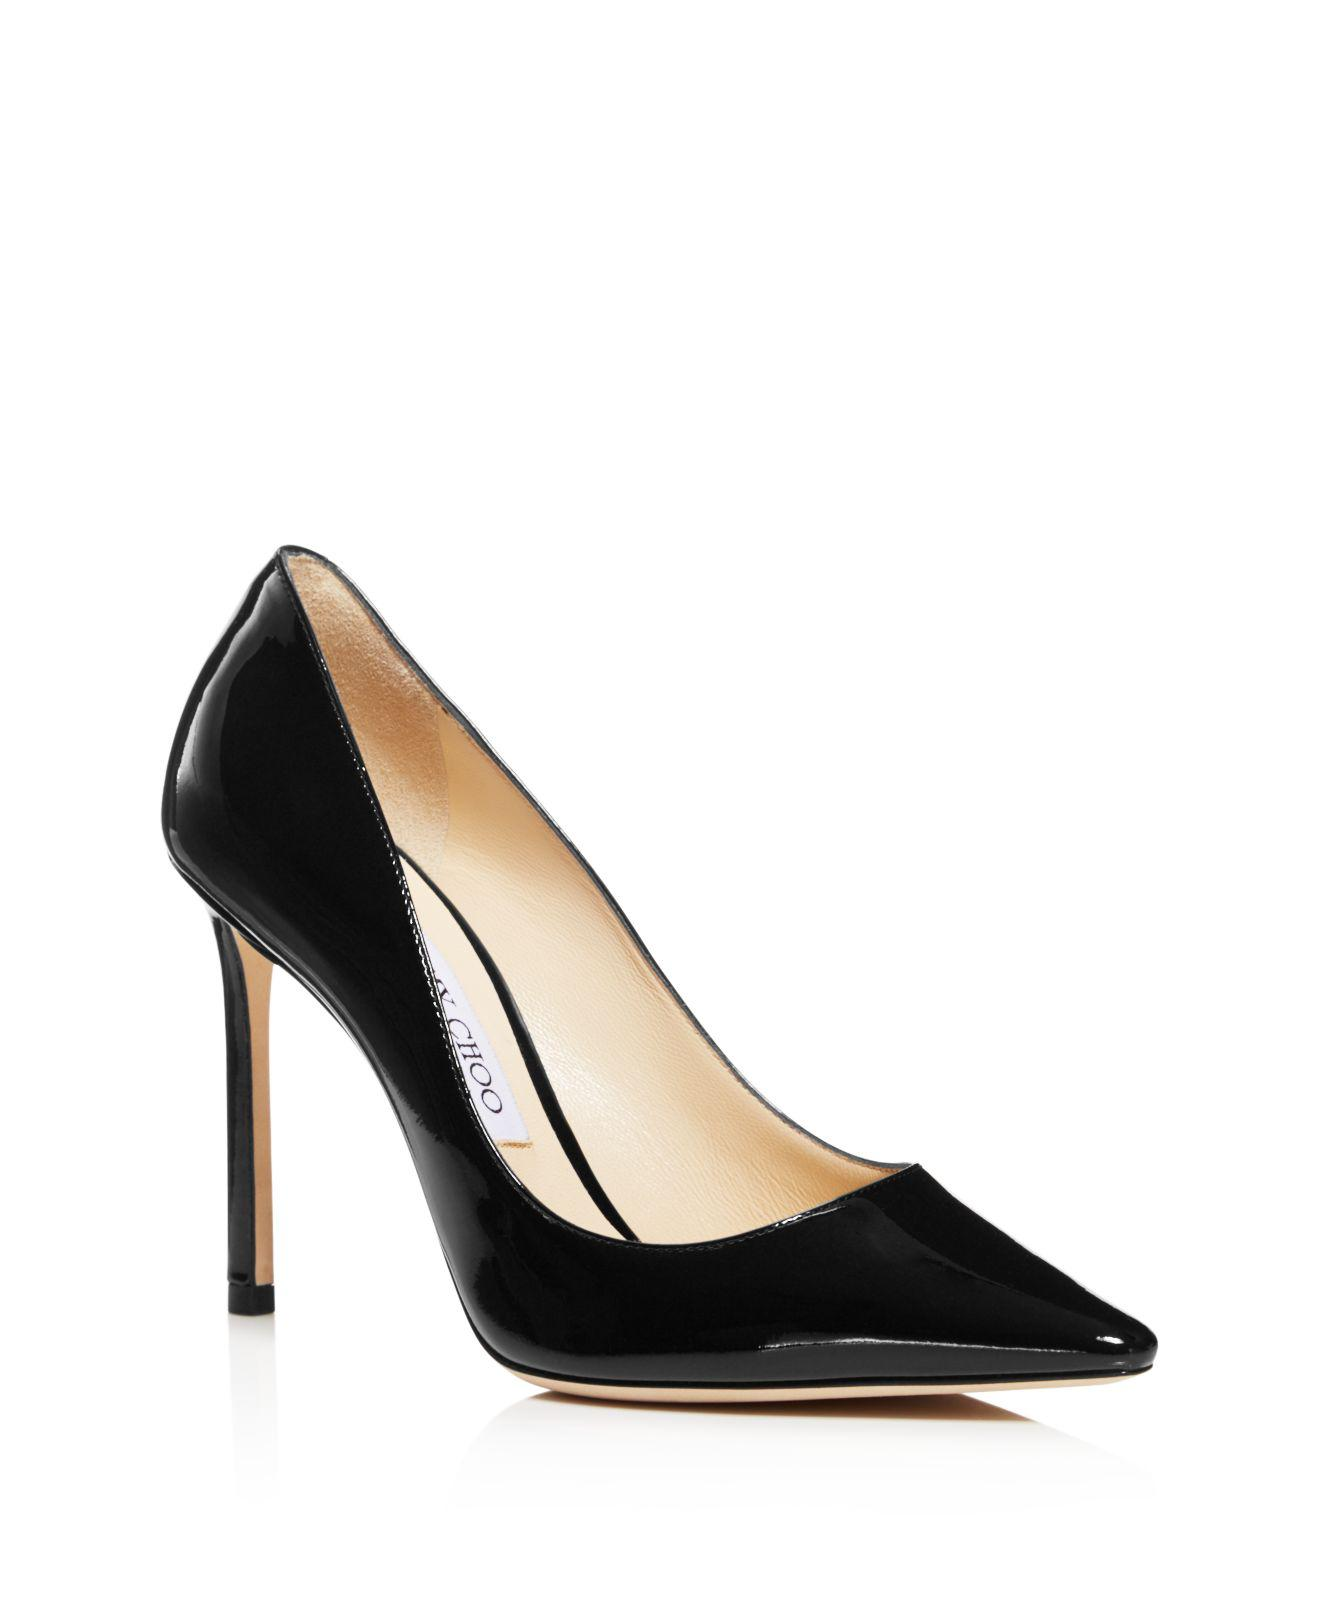 Jimmy choo Women's Romy 100 Patent Leather High-Heel Pointed Toe Pumps fPoAjbcmJG